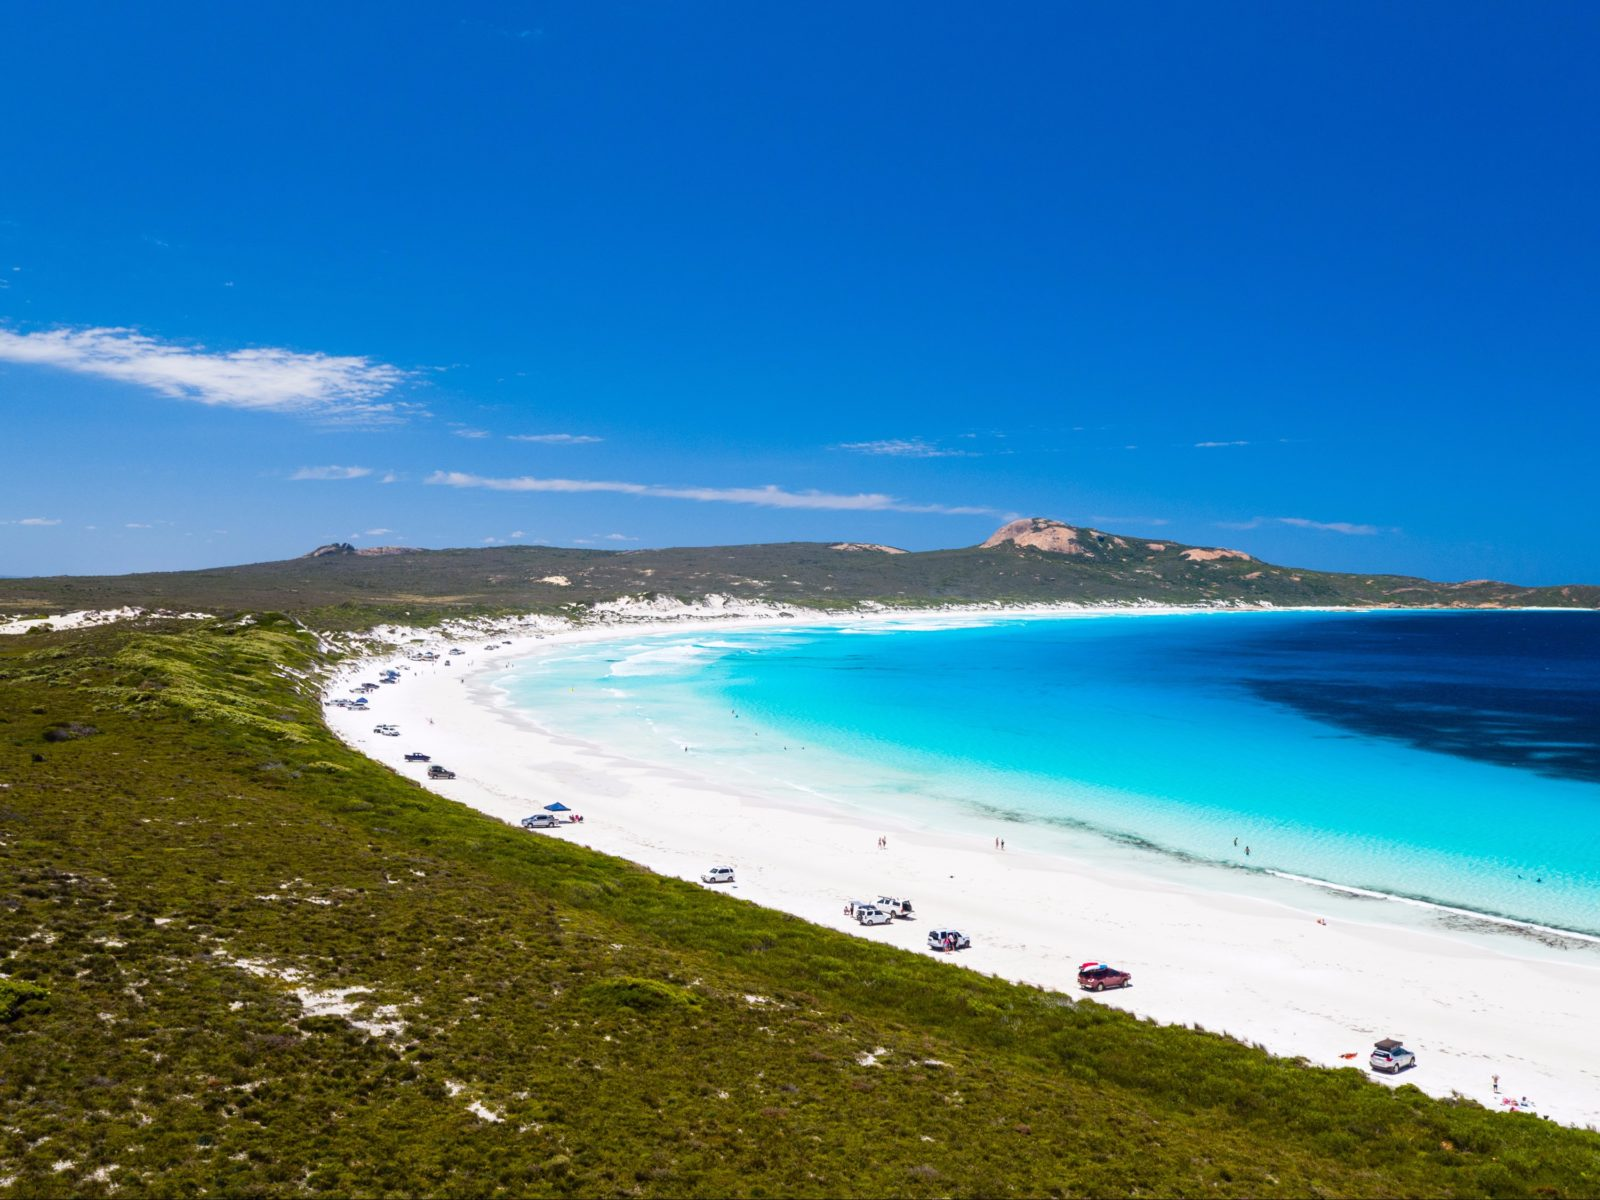 Aerial view of Lucky Bay, near Esperance